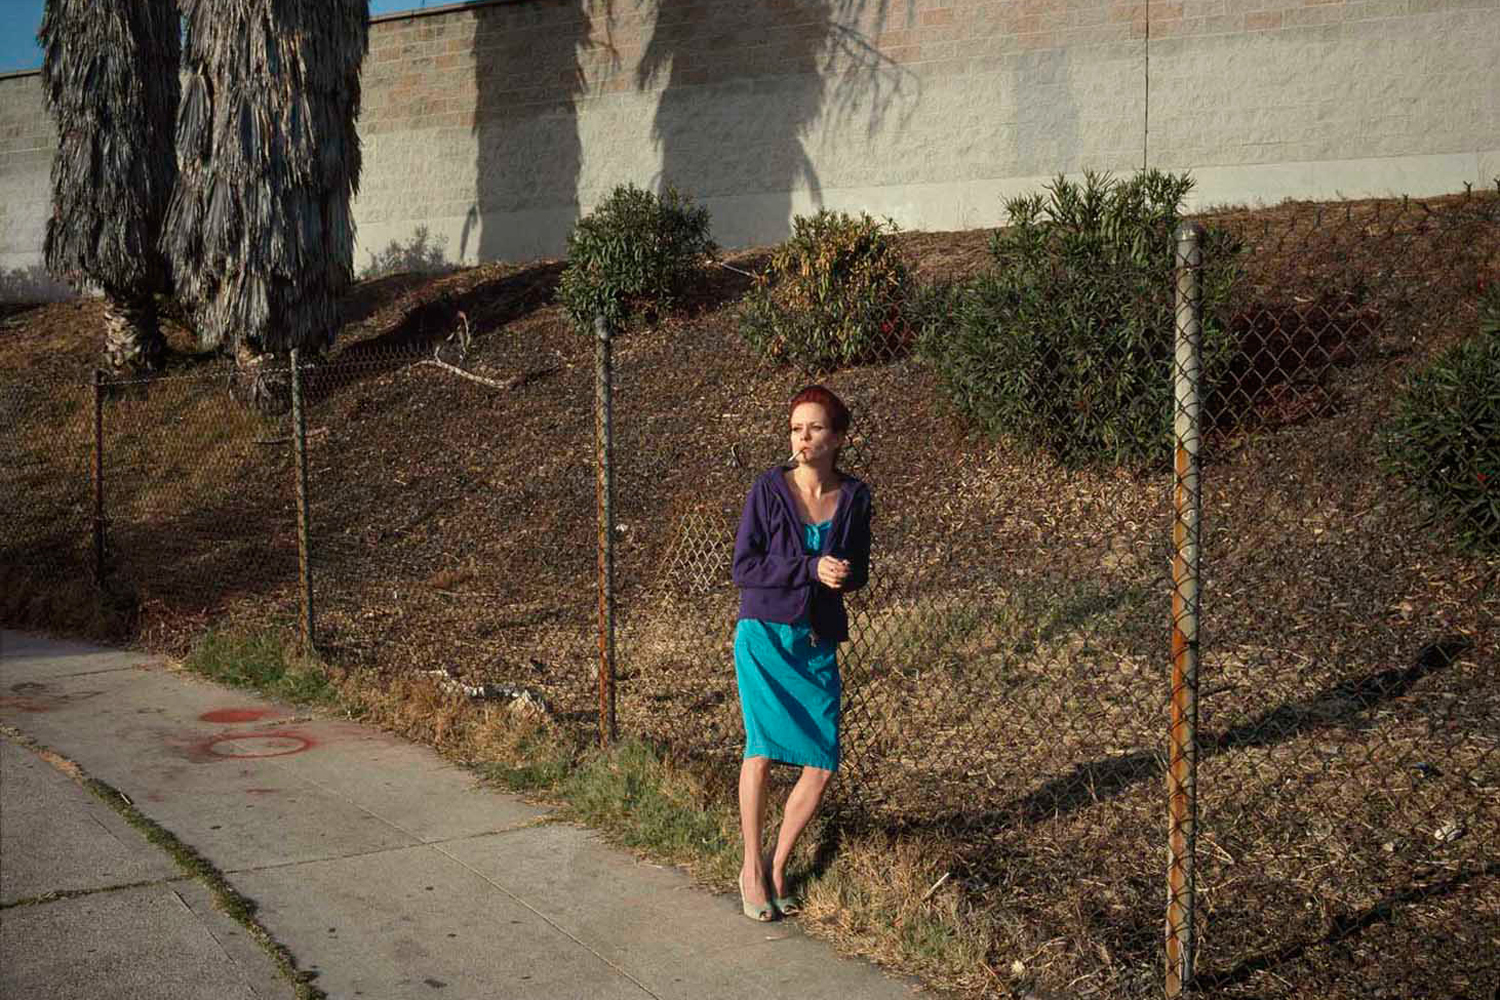 Heather #03, Lemon Grove Avenue, 2009. From the series On Hollywood.